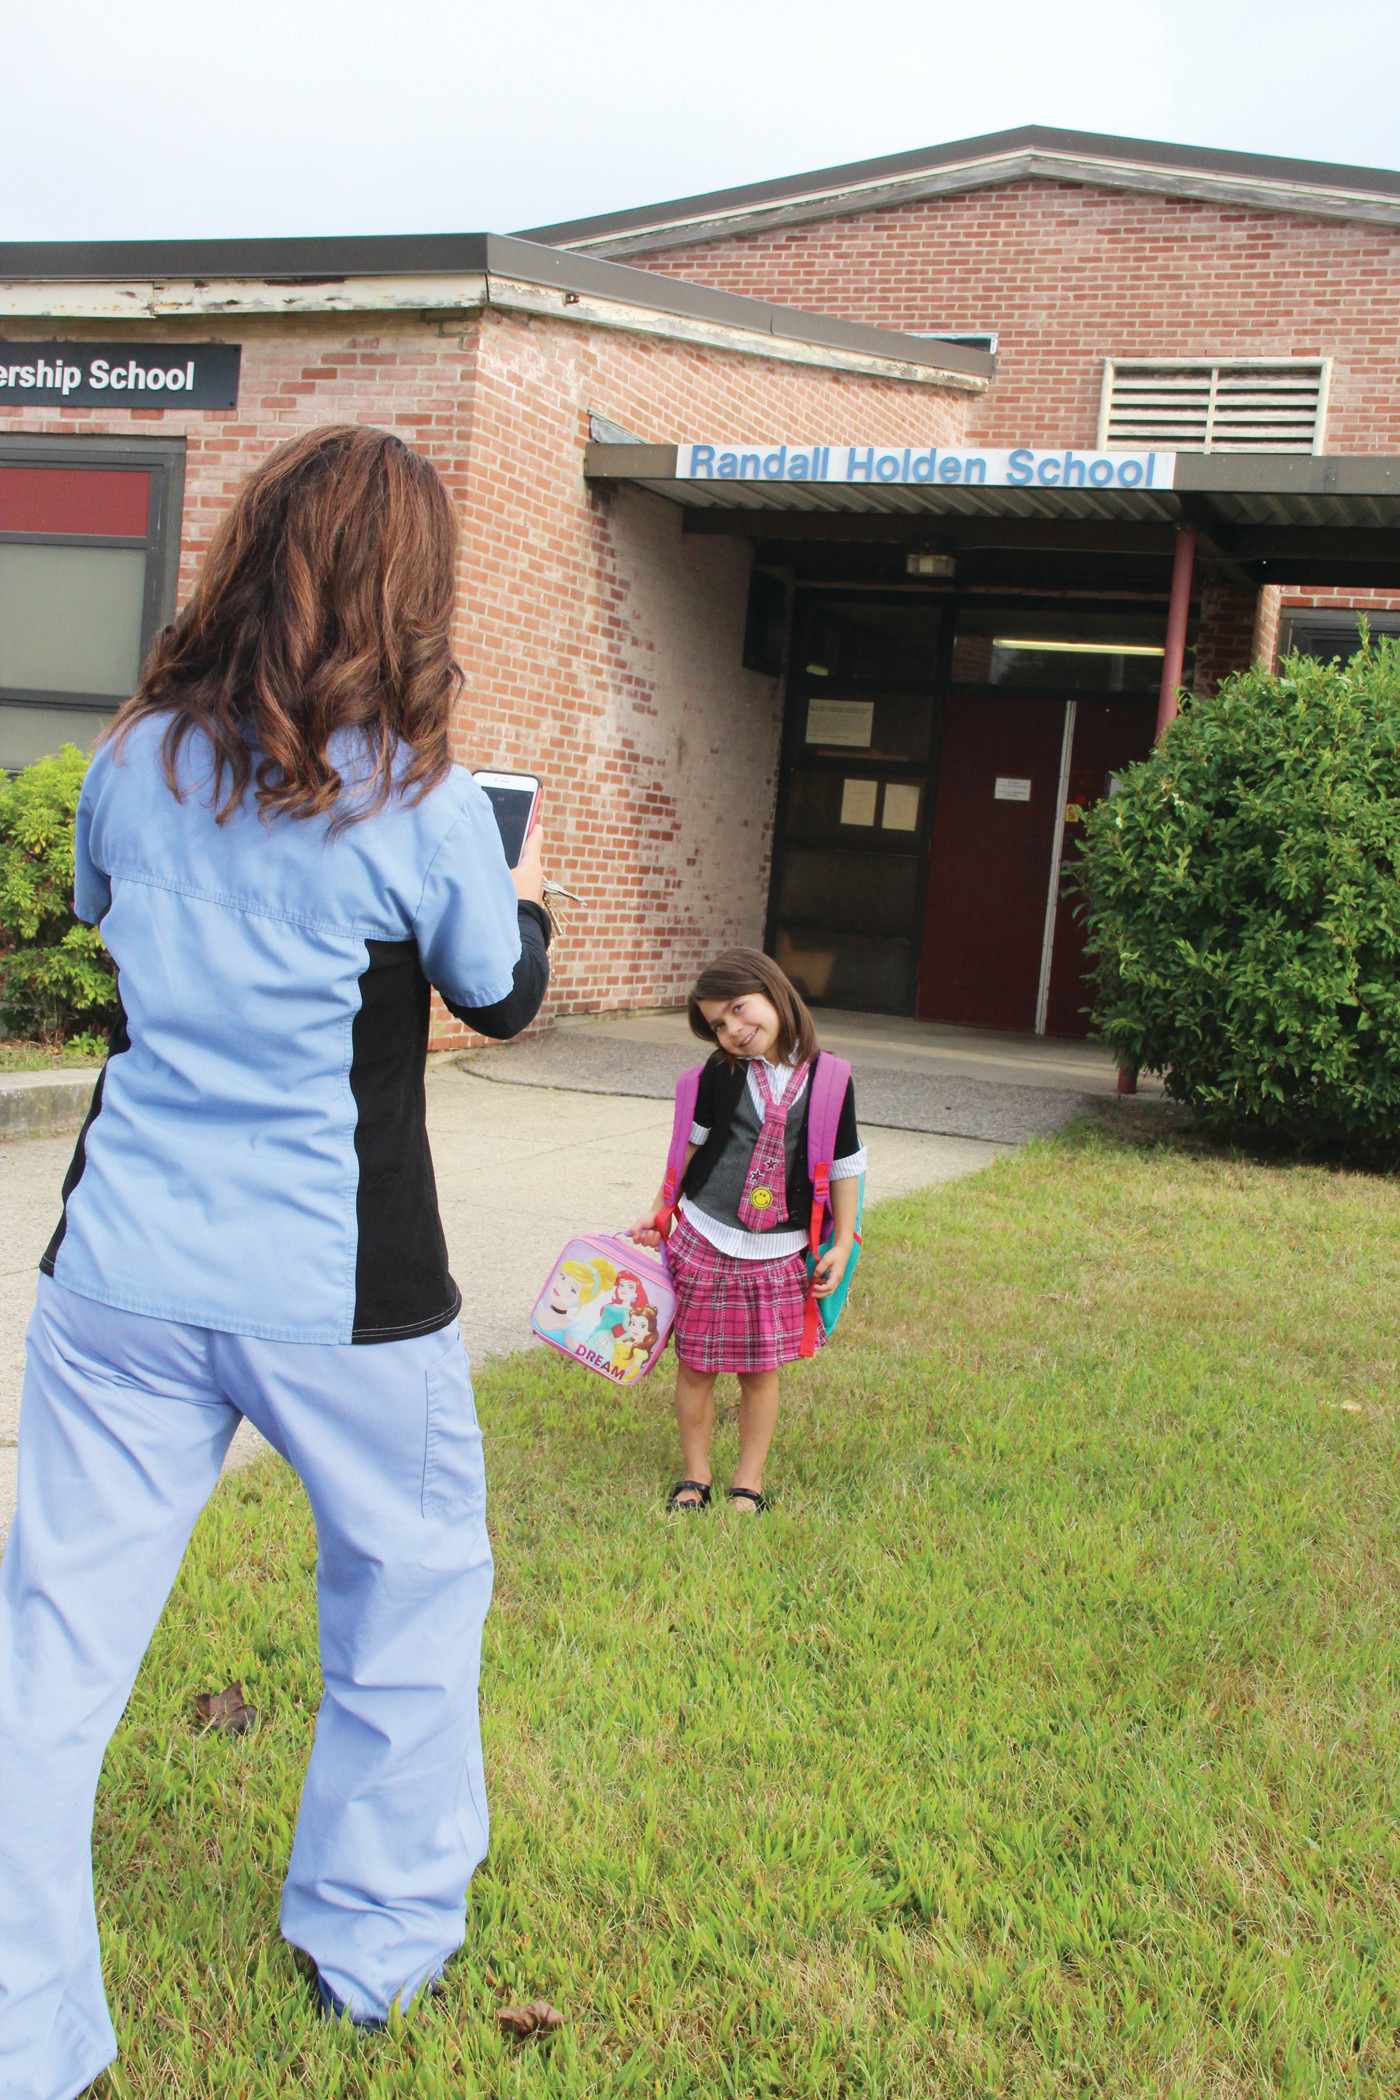 FIRST DAY OF K: Melissa DiRocco snaps a picture of her daughter, Natalia, as she's about to start her first day of kindergarten at Randall Holden School. The school is one of two slated to close next year with the consolidation of elementary schools. Wickes is the other with John Brown Francis becoming the early education center now at Drum Rock.